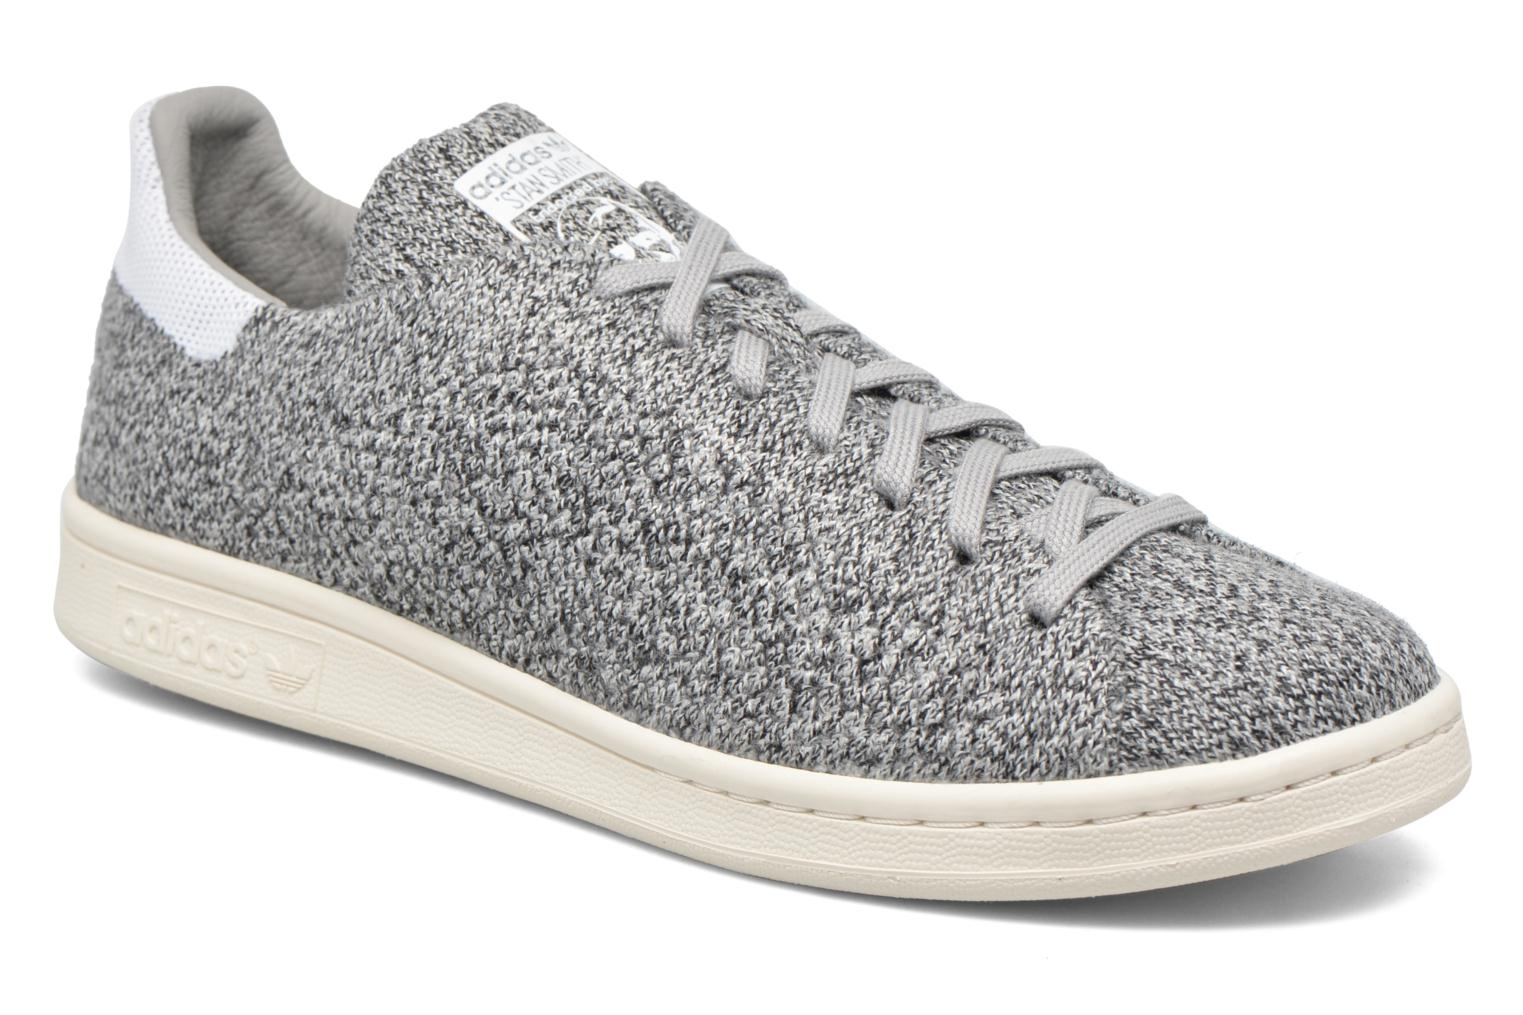 Stan Smith Pk Grdemg/Grdemg/Ftwbla